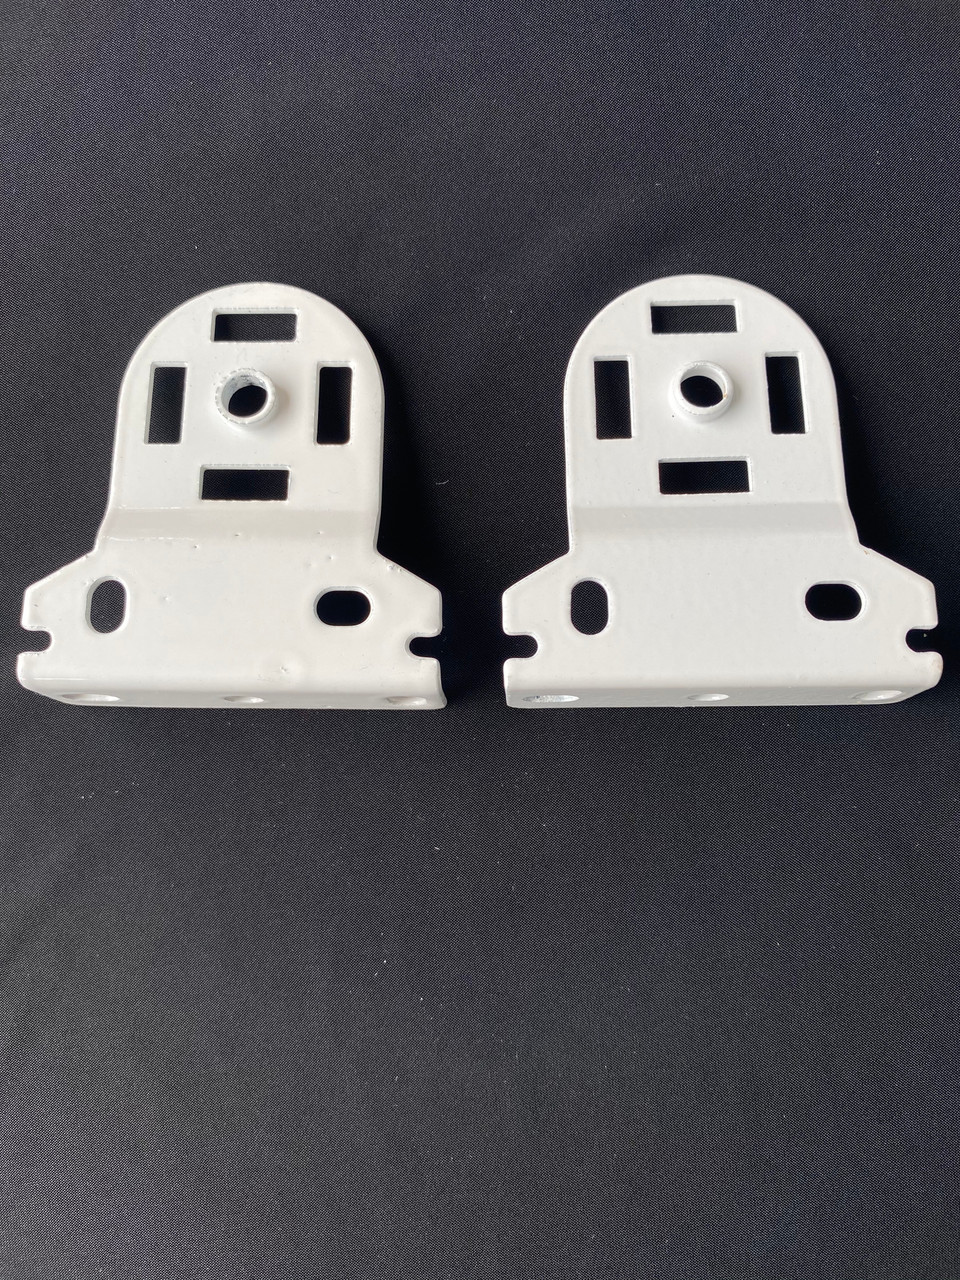 RollEase Roller Shade Mounting Bracket - Back View